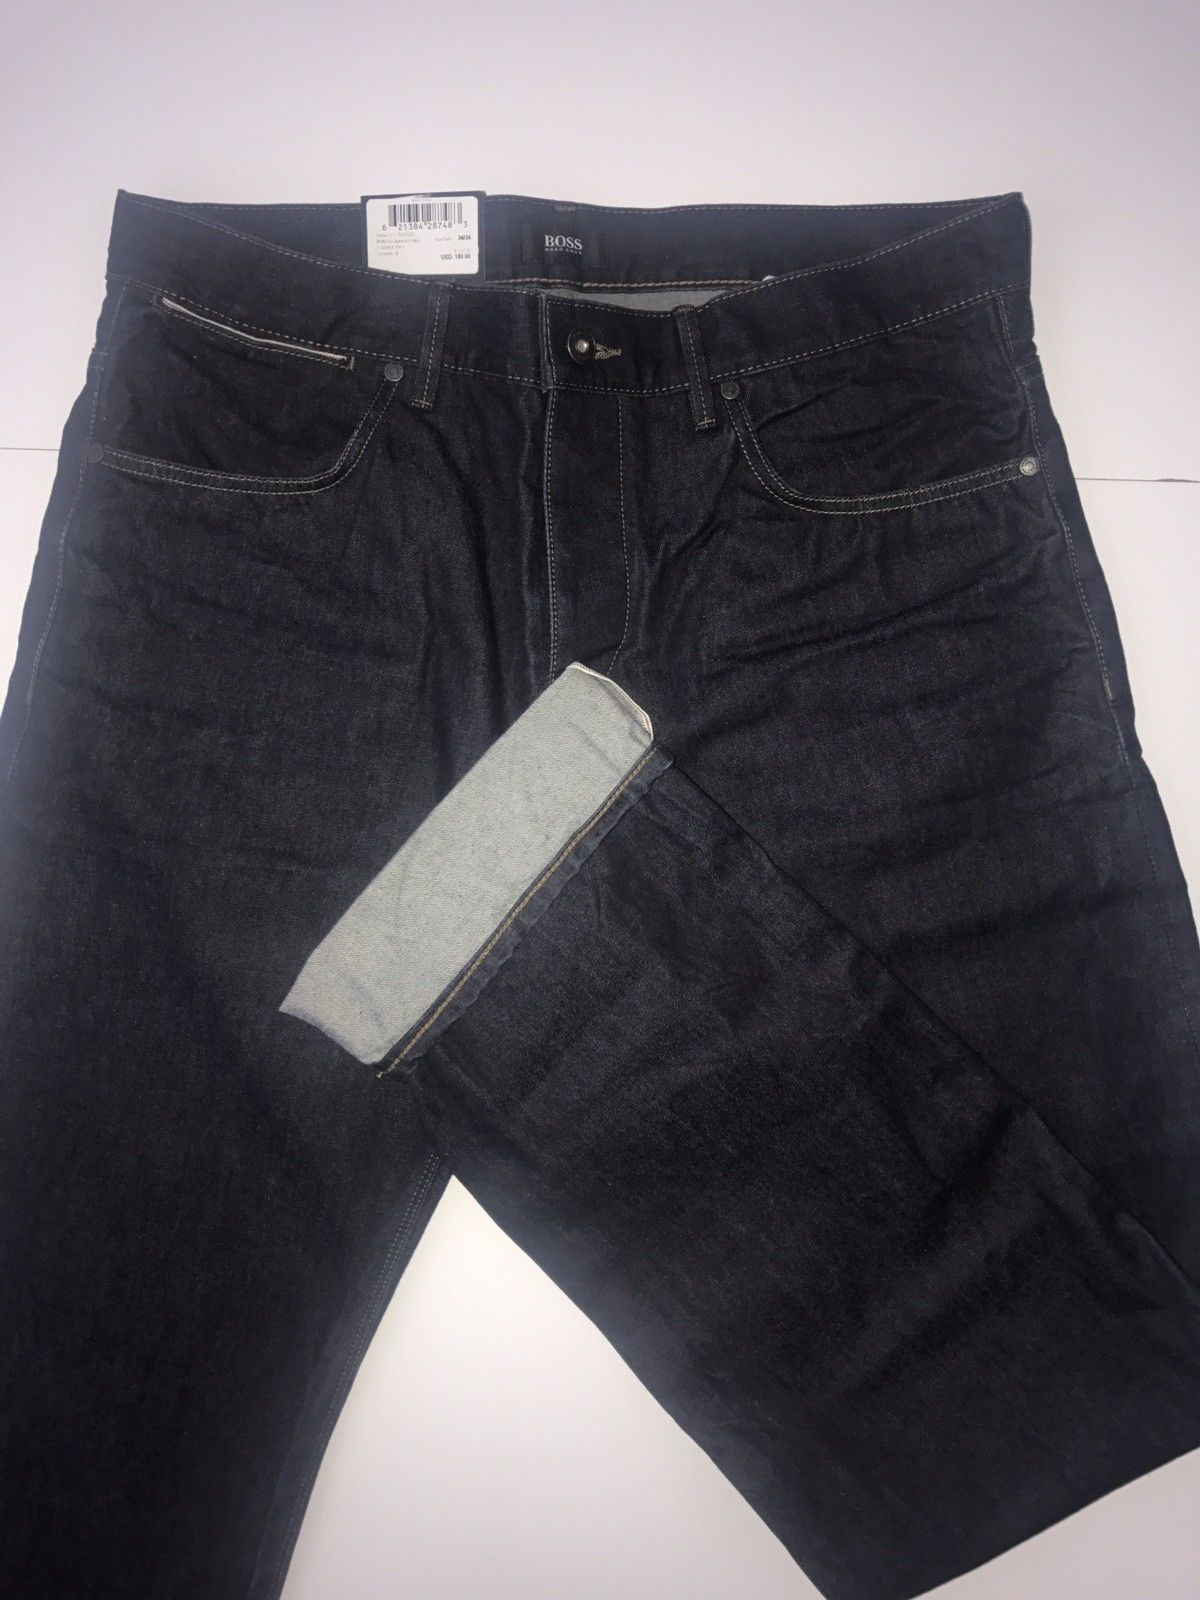 NWT $235 Hugo Boss Mens Maine1 Cotton Regular Fit  Navy Jeans Pants Size 36/34